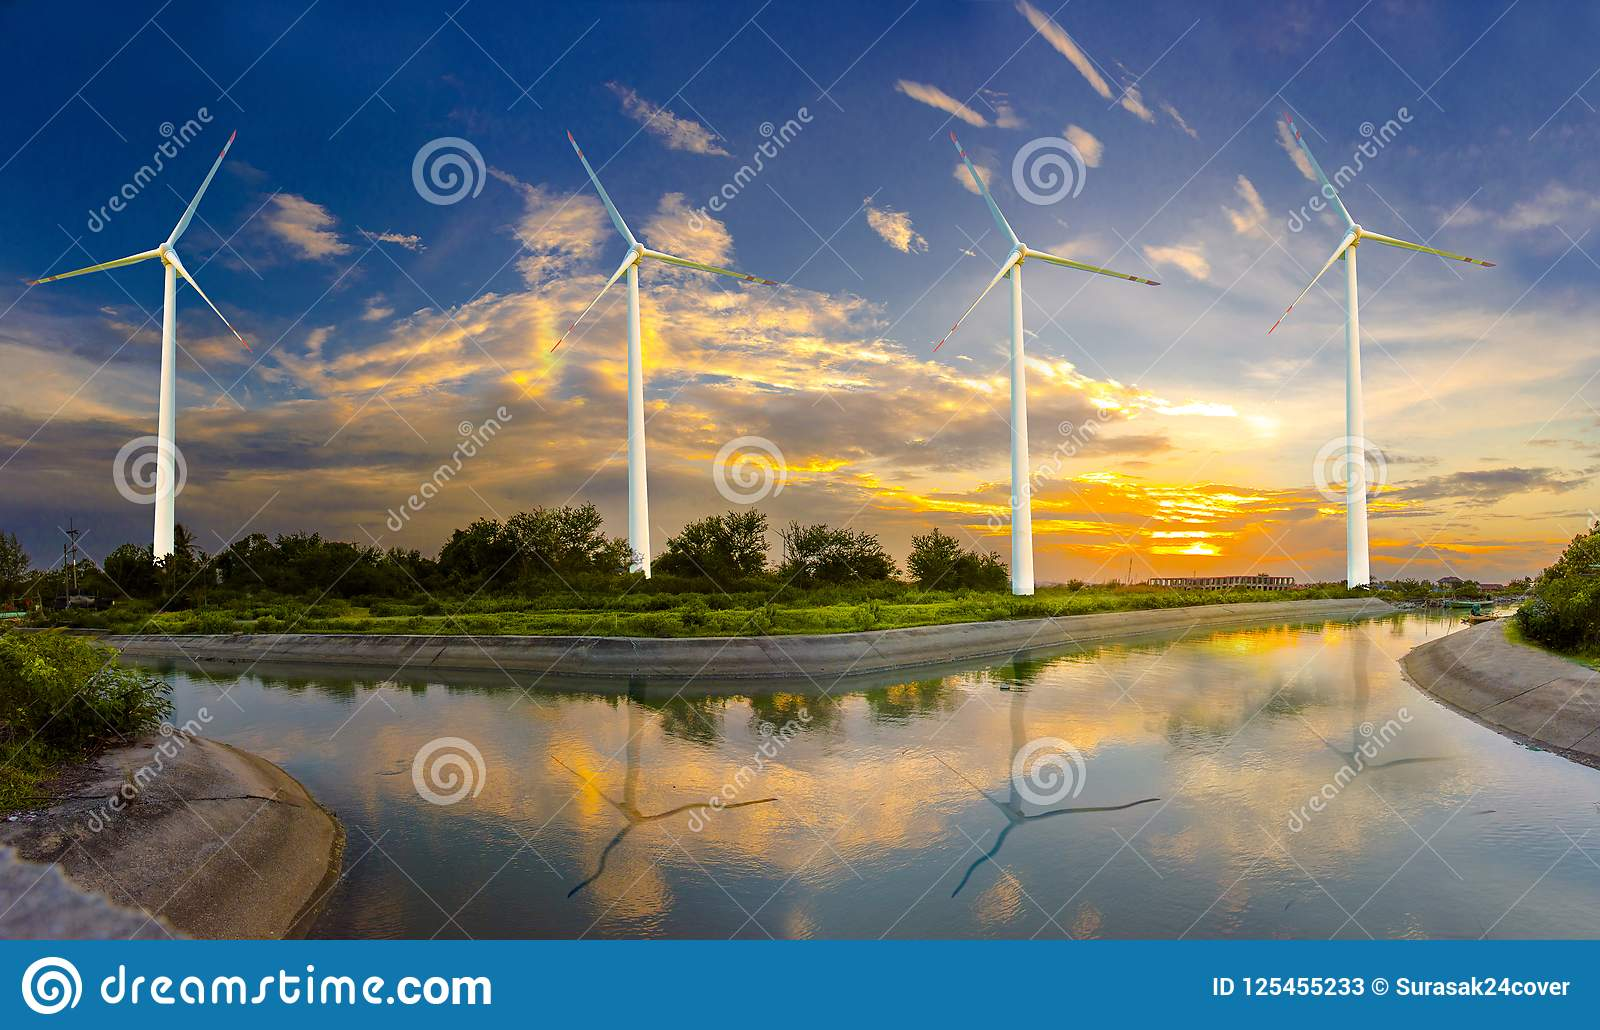 Wind turbine or wind power Translated into electricity, environmental protection Make the world not hot.